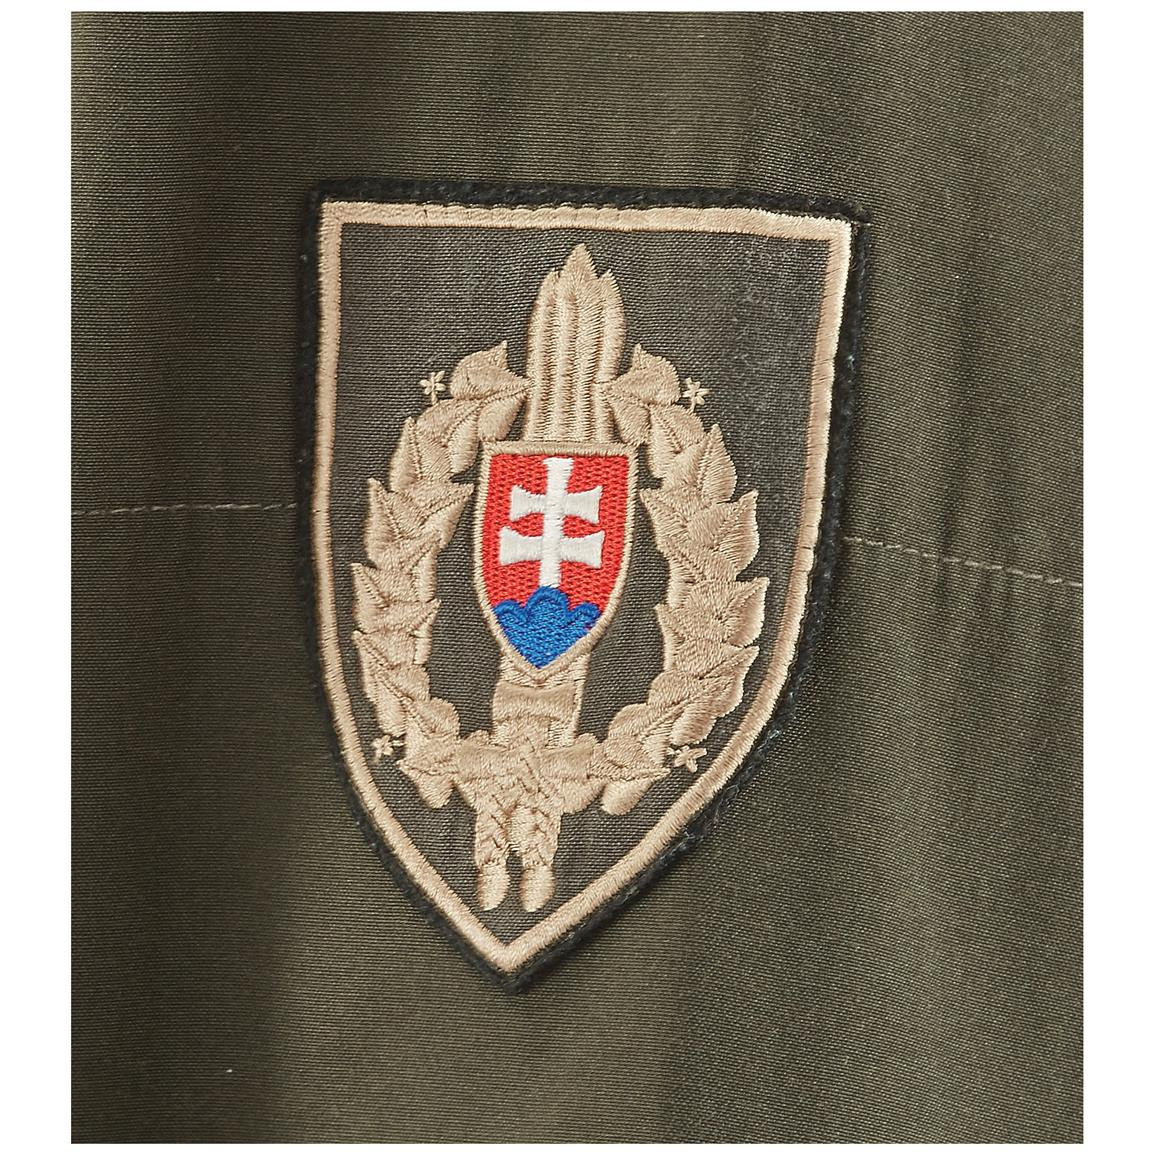 Czech Military symbol on the sleeve